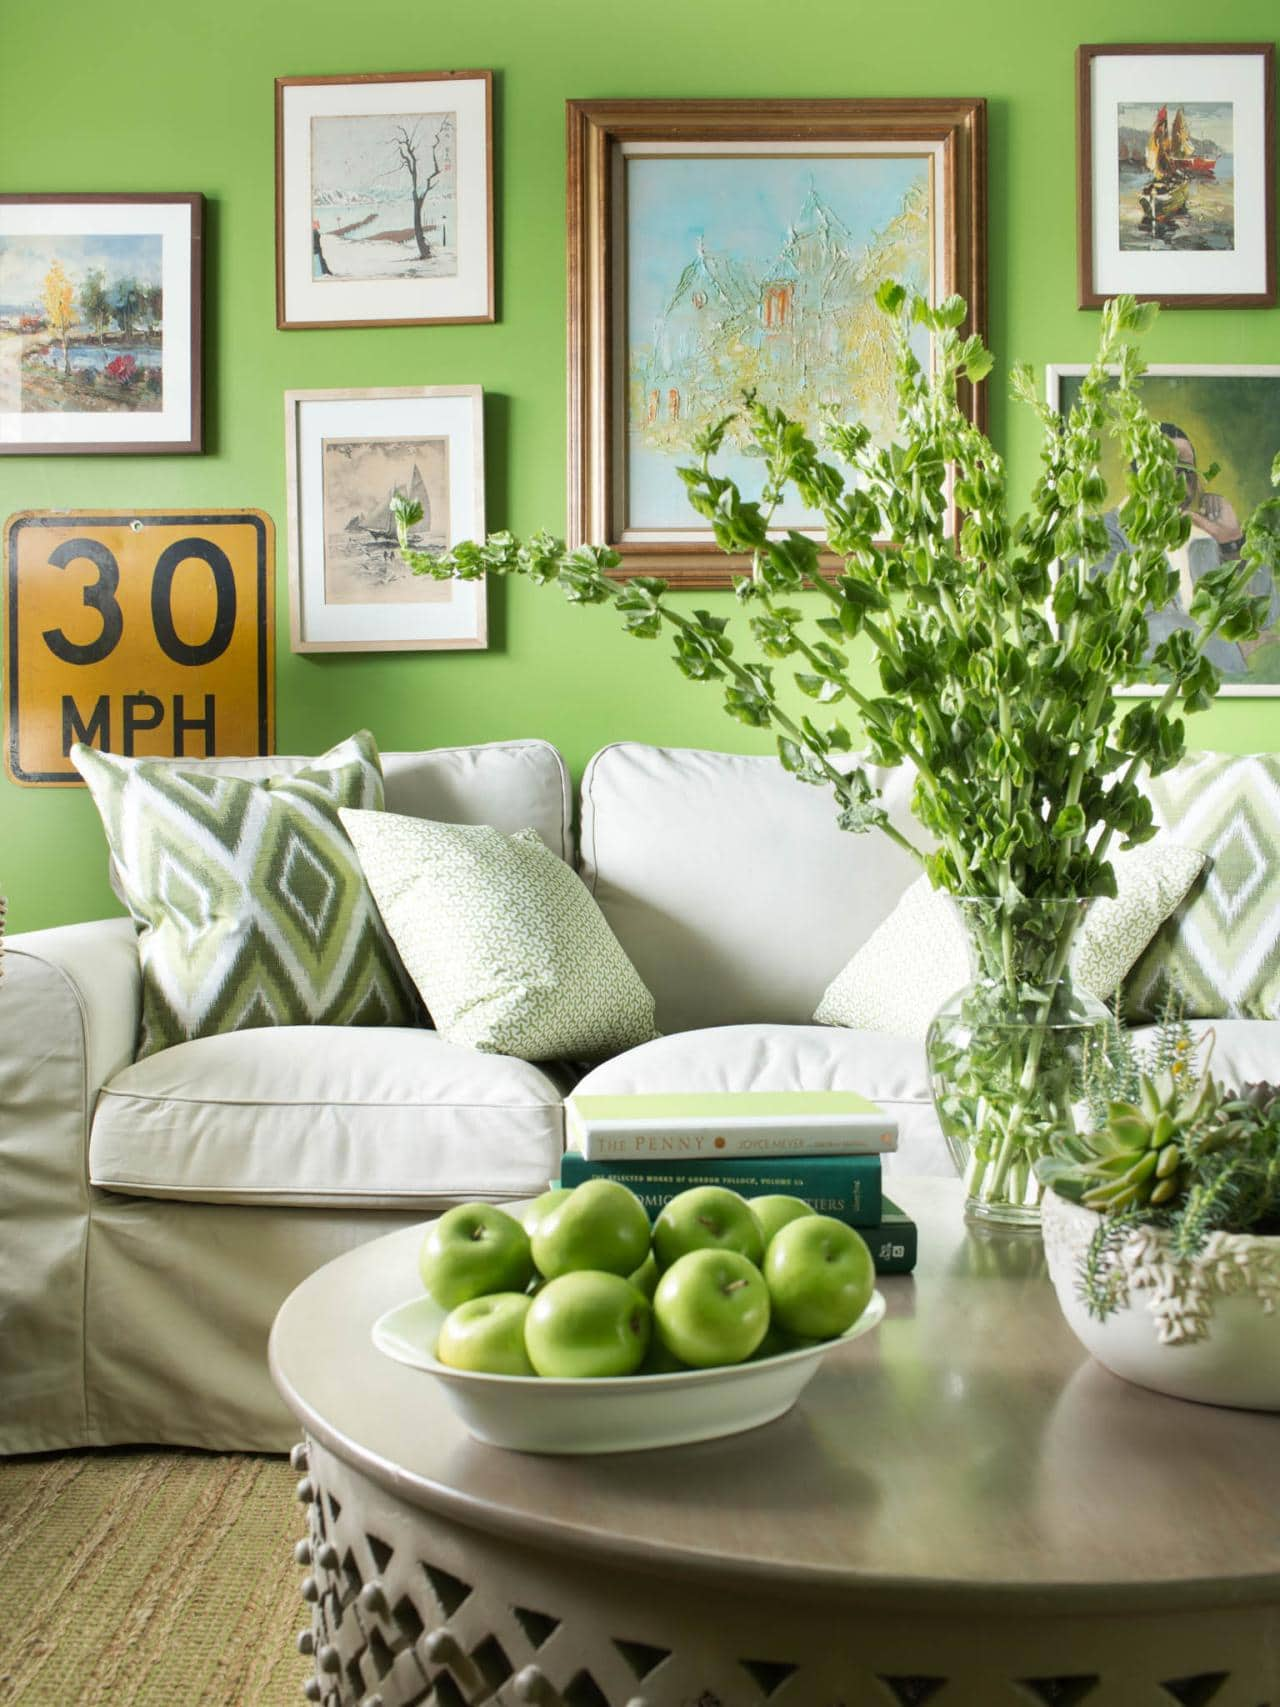 original-bpf_paint-colors-by-room_overt-green-sherwin-williams-couch_jpg_rend_hgtvcom_1280_1707